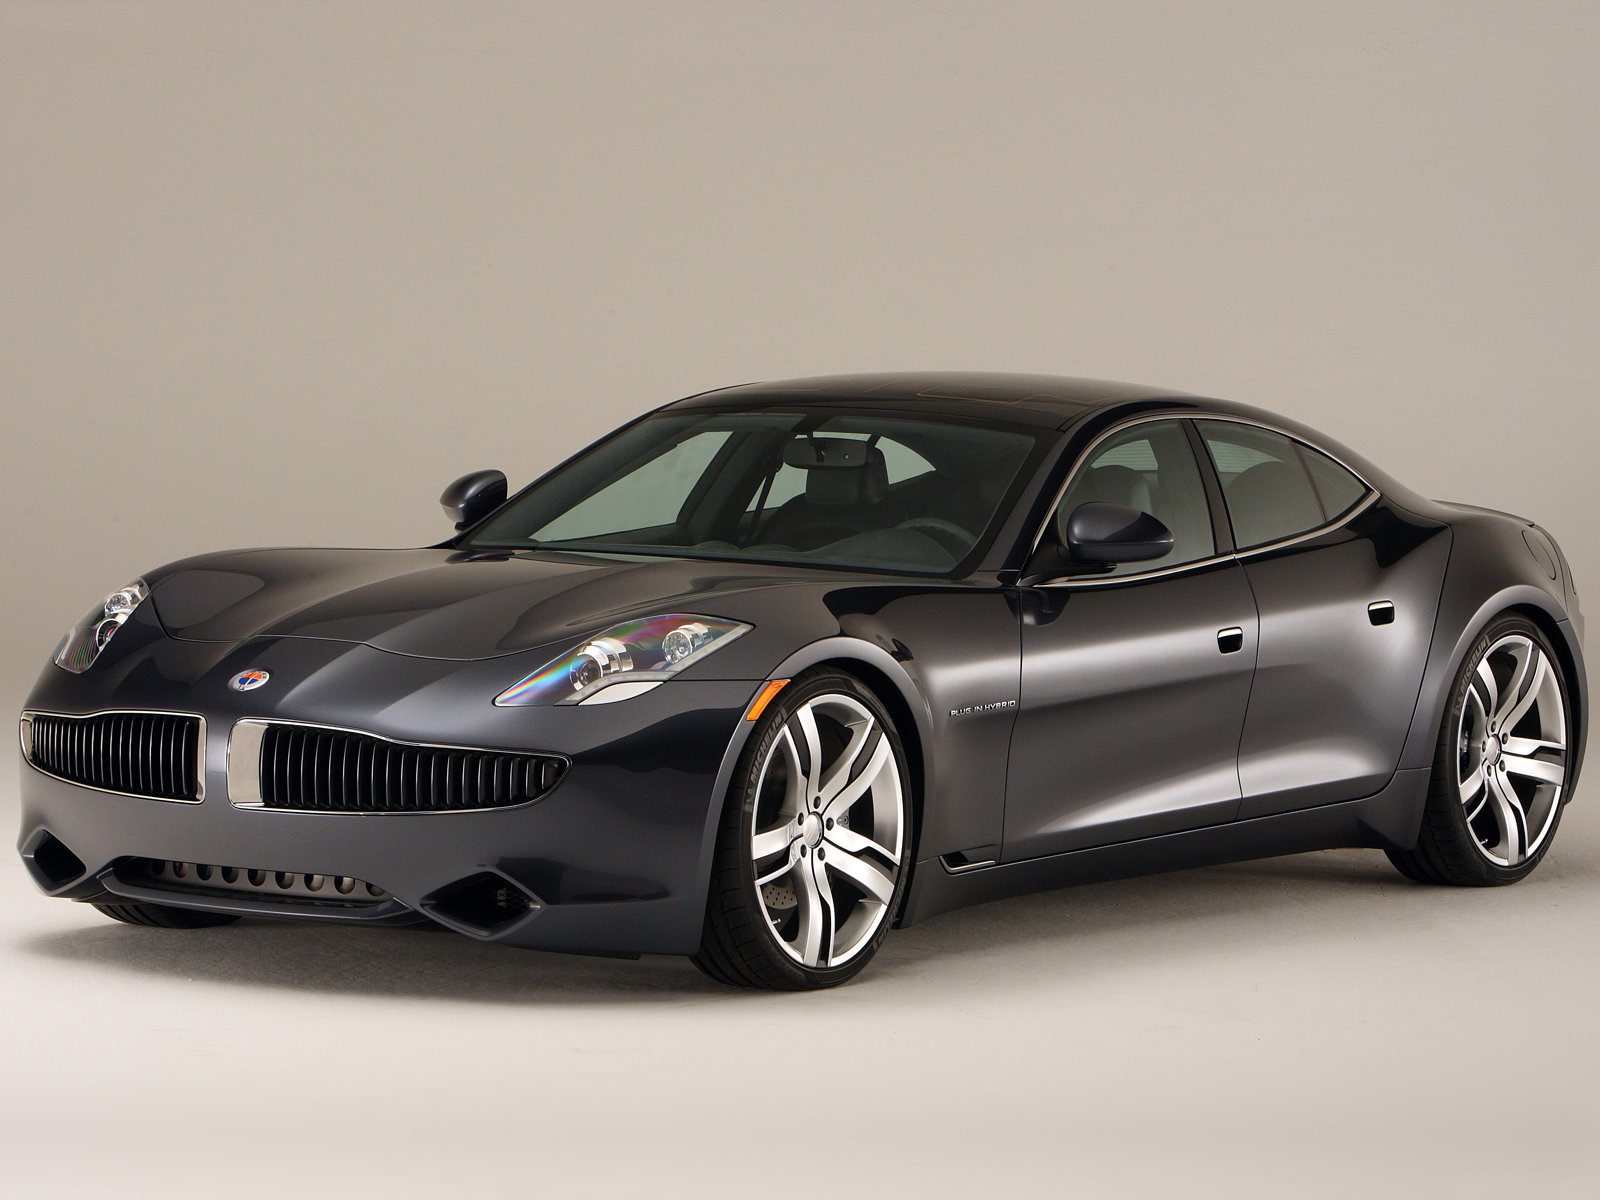 Fisker Karma Price Goes Up Again To Or Higher